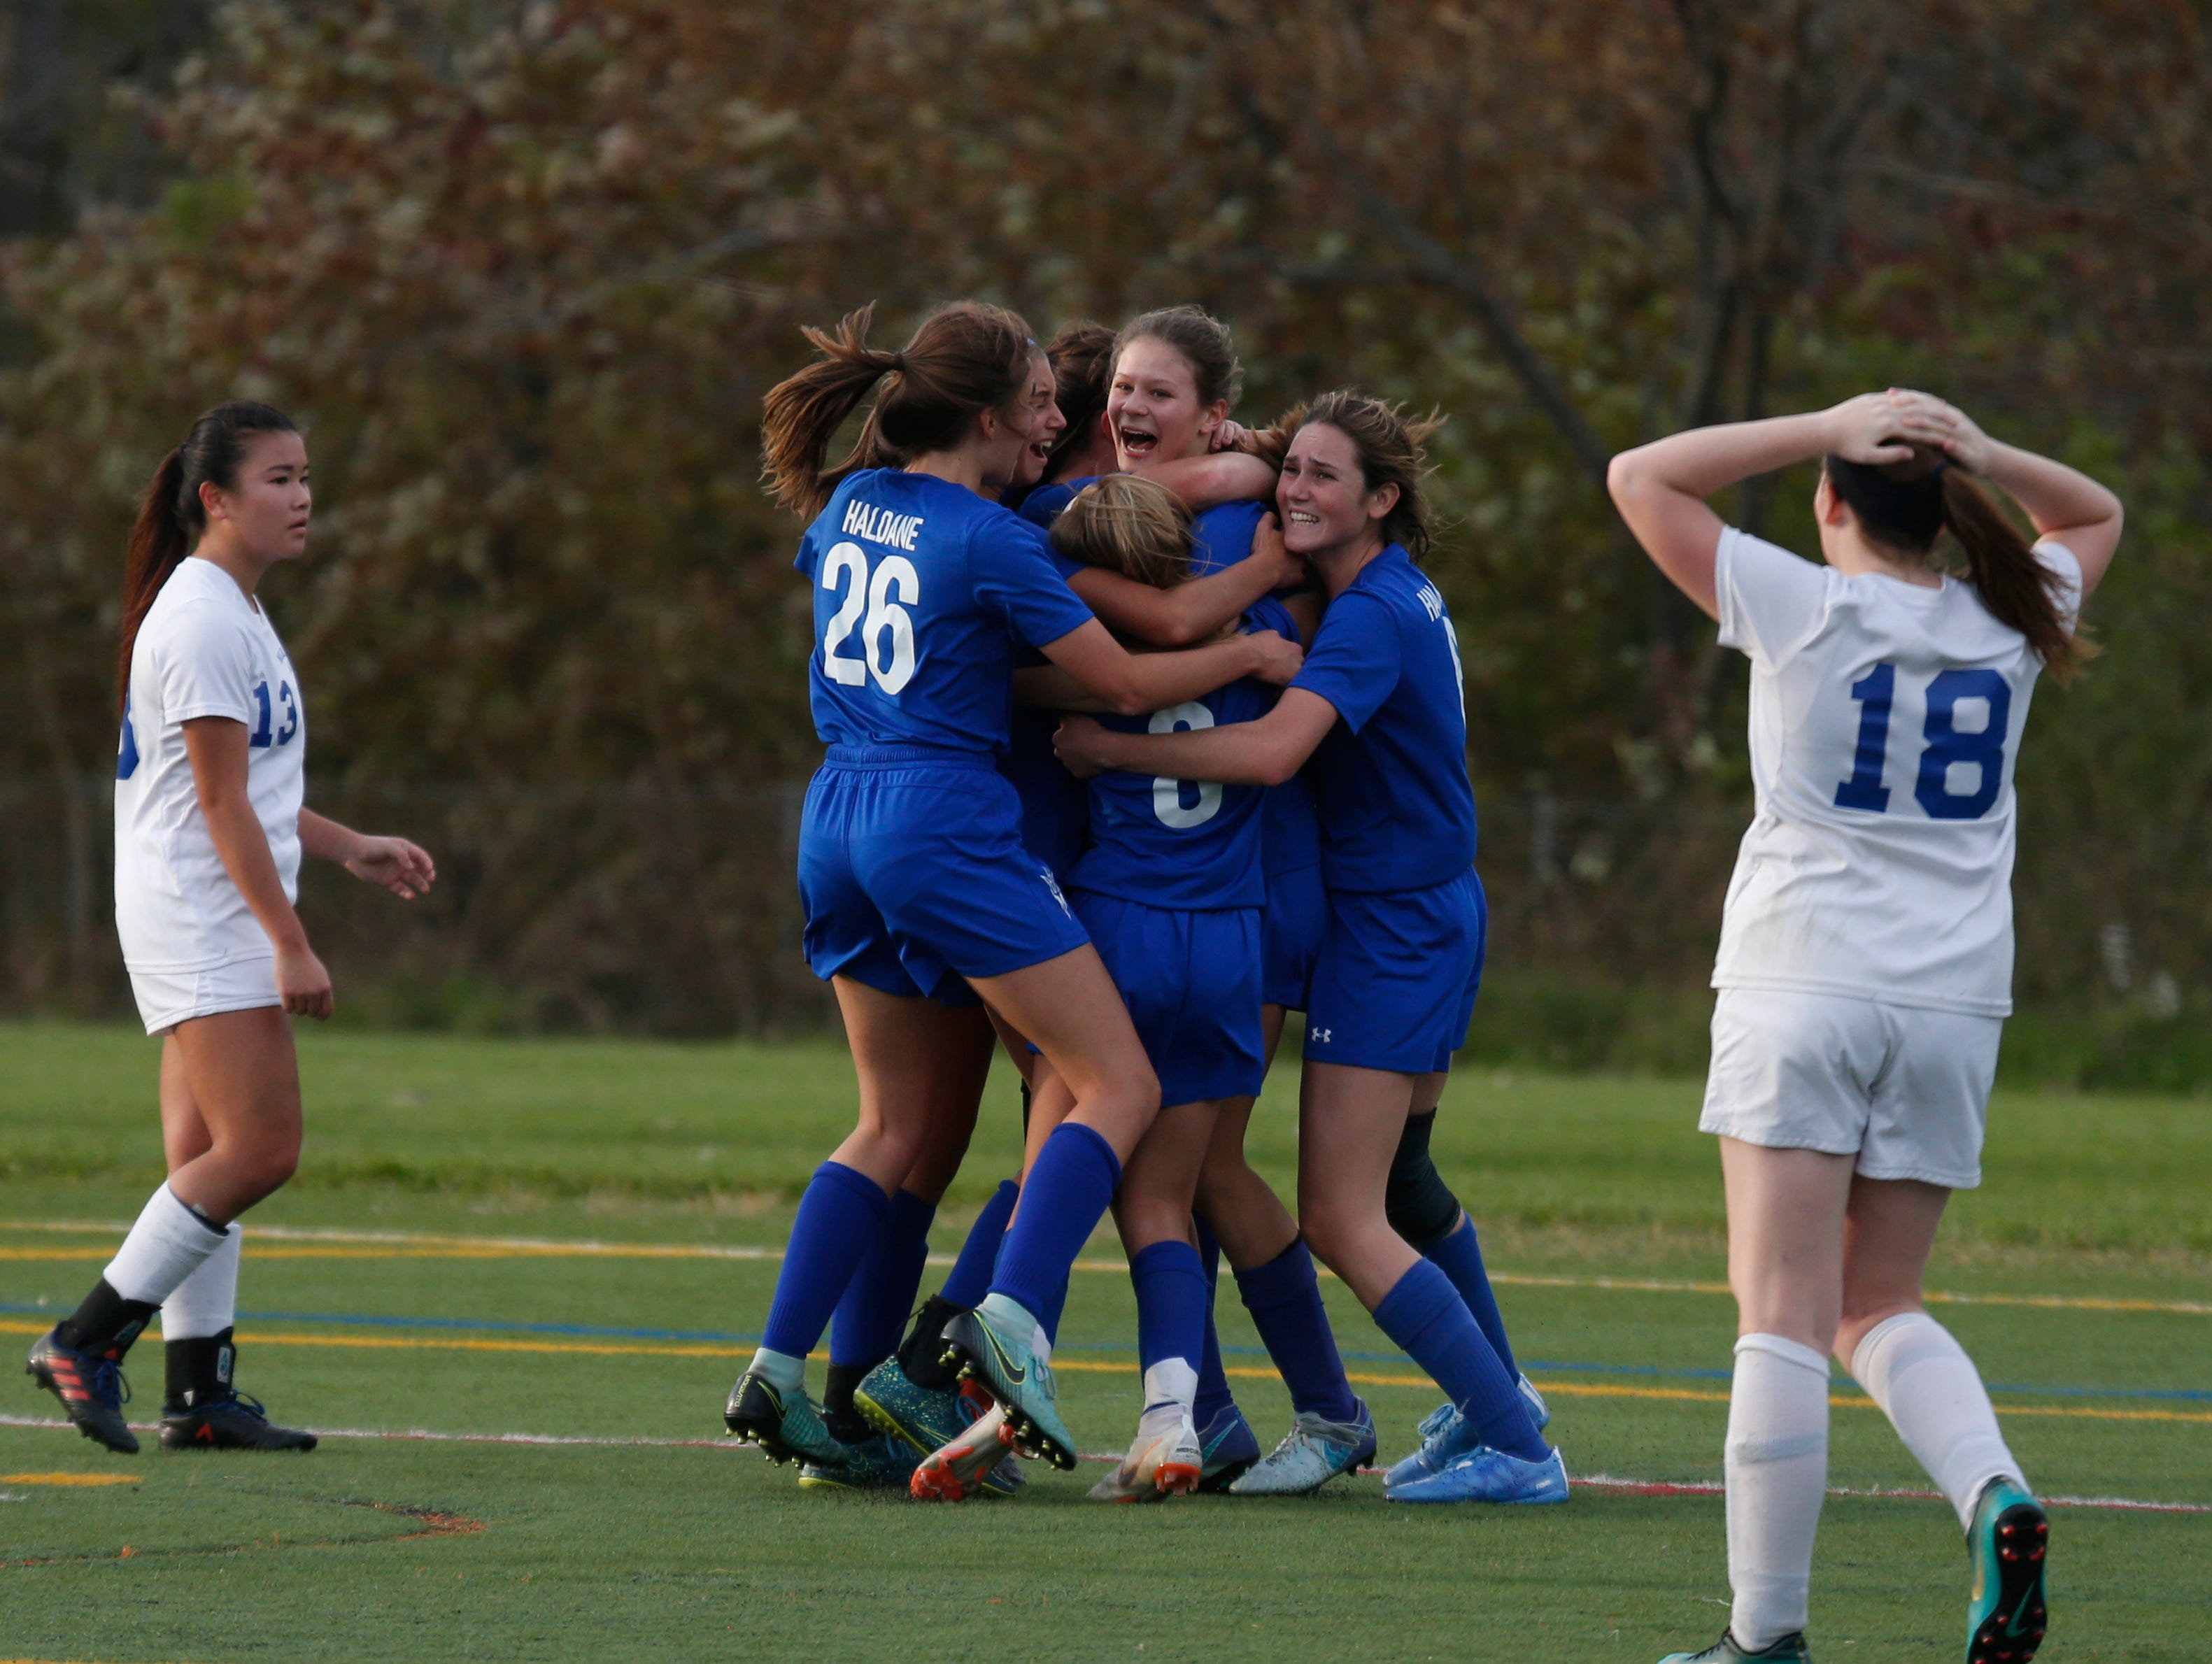 Haldane celebrates scoring a goal to tie the game during Wednesday's Class C regional semifinal over Millbrook in Freedom Plains on October 31, 2018.